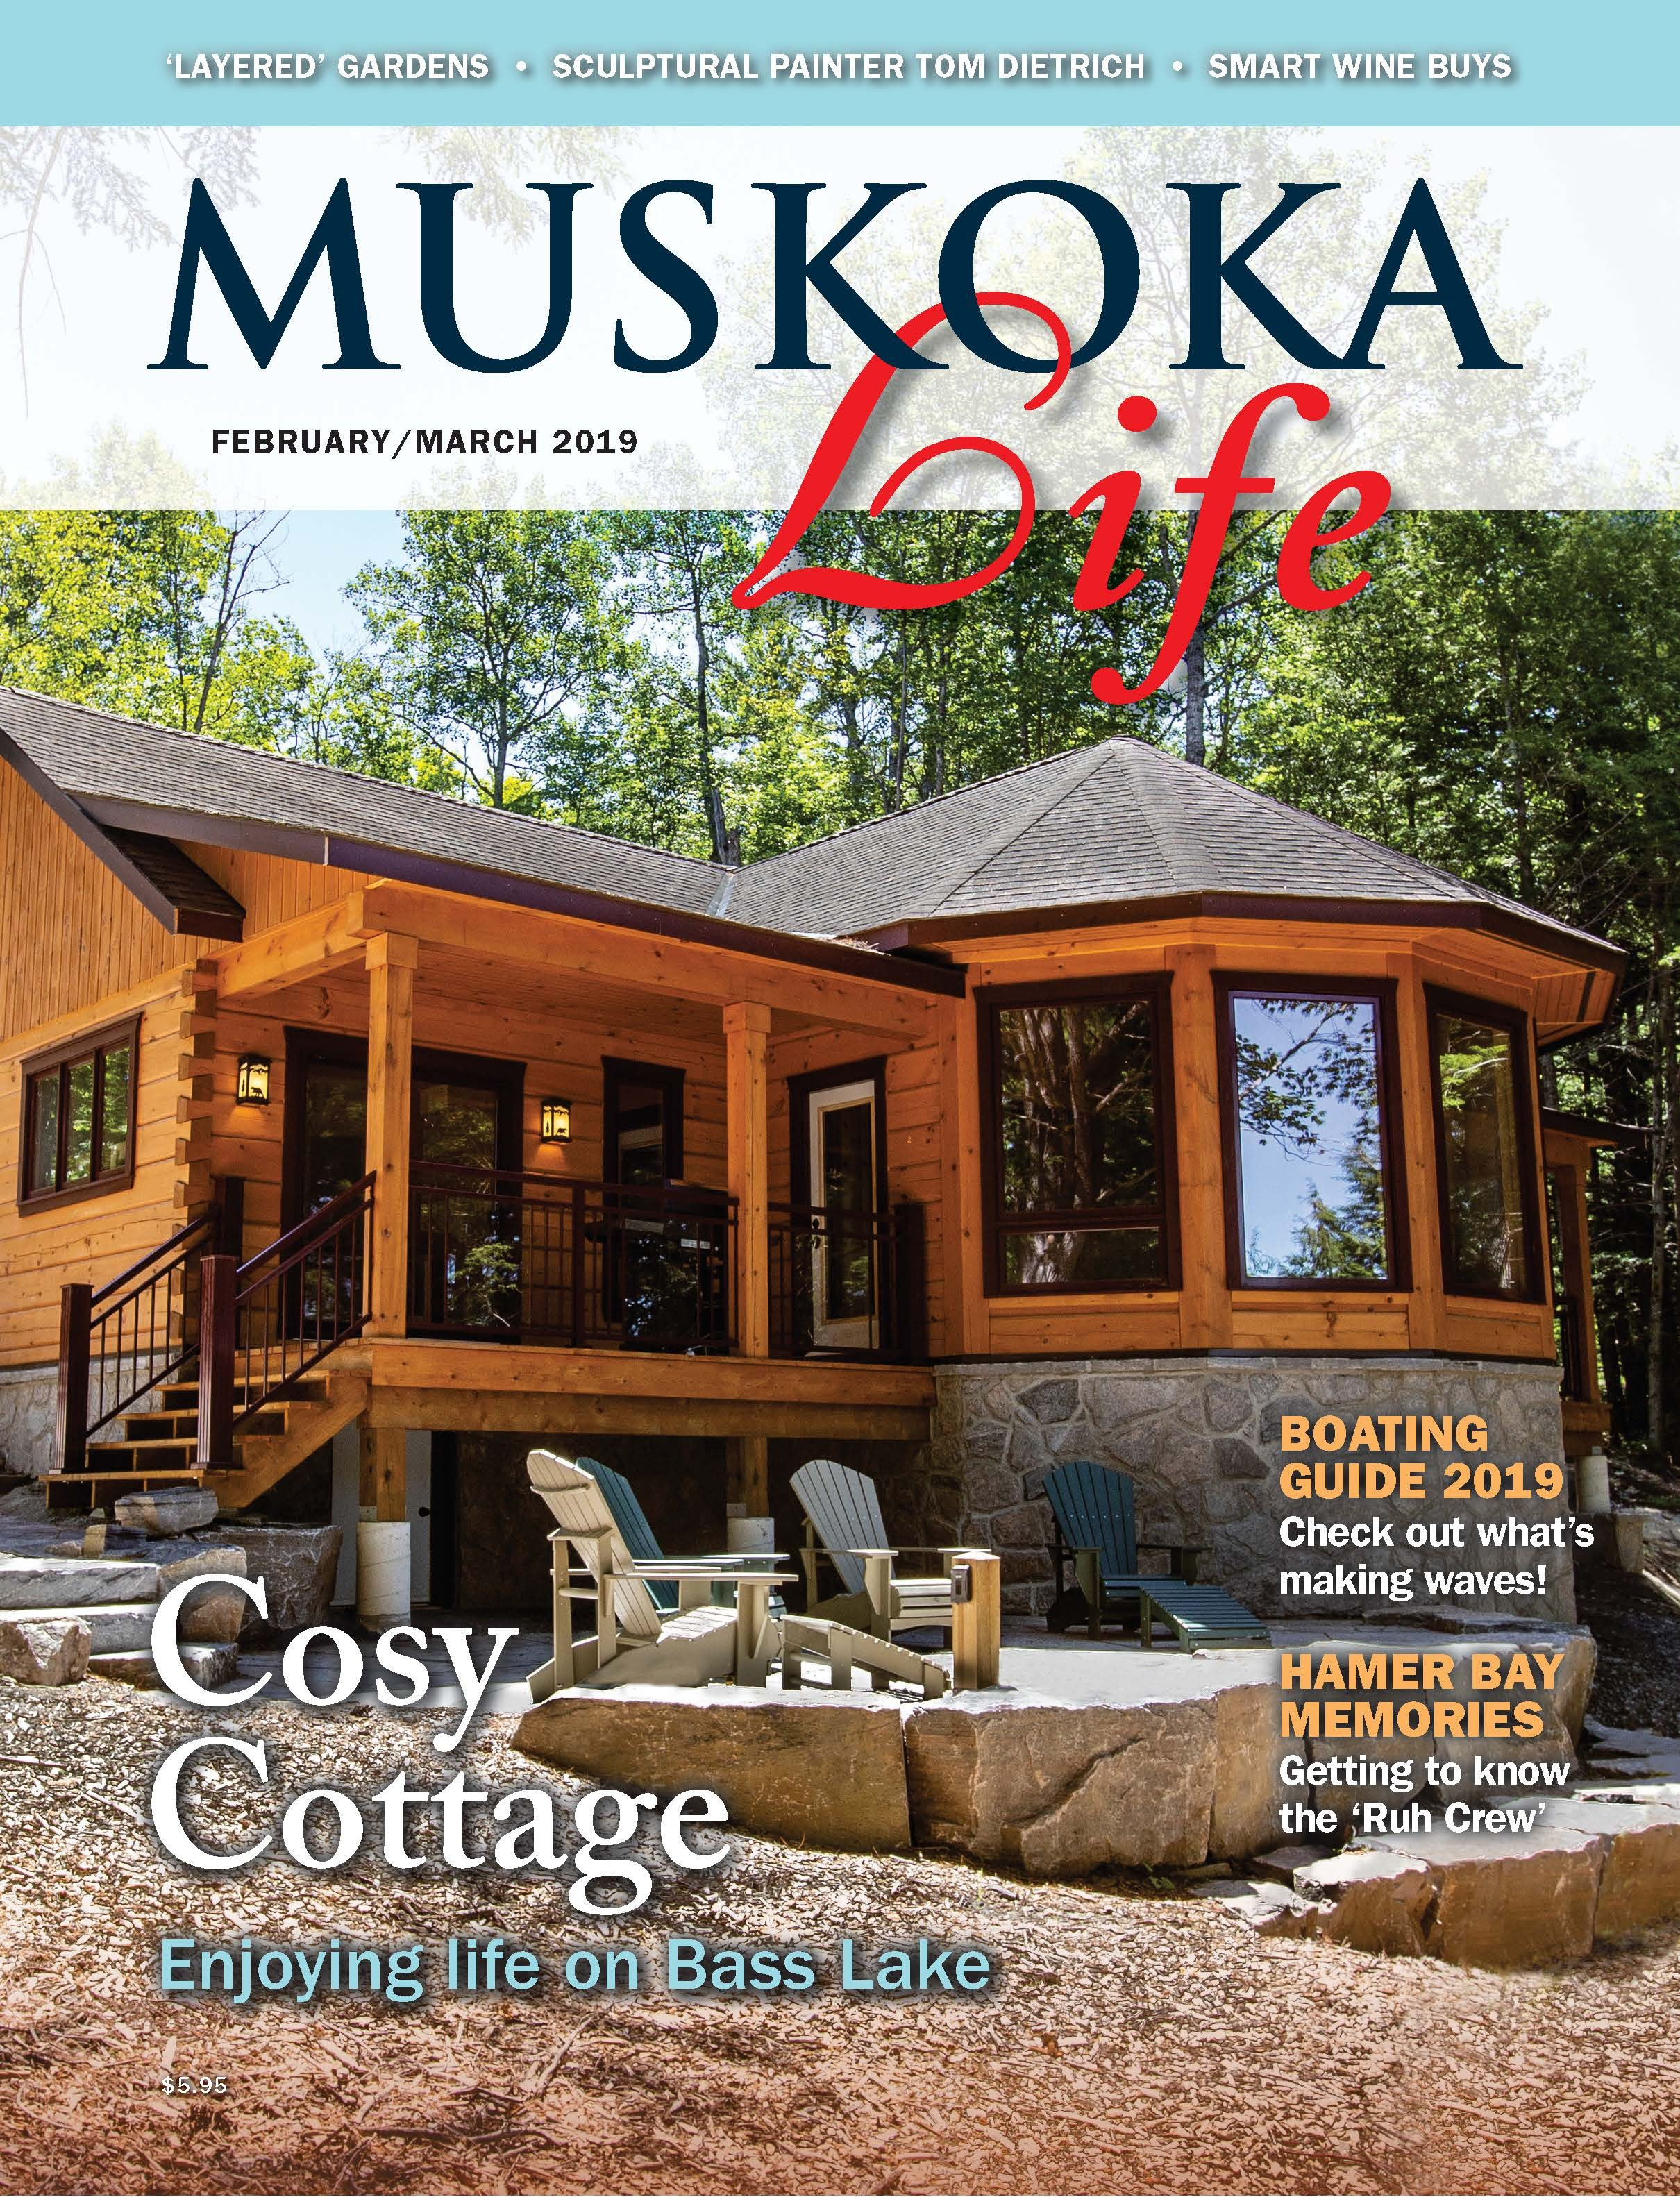 Muskoka Life magazine - February/March 2019 - Cosy Cottage, Enjoying life on Bass Lake